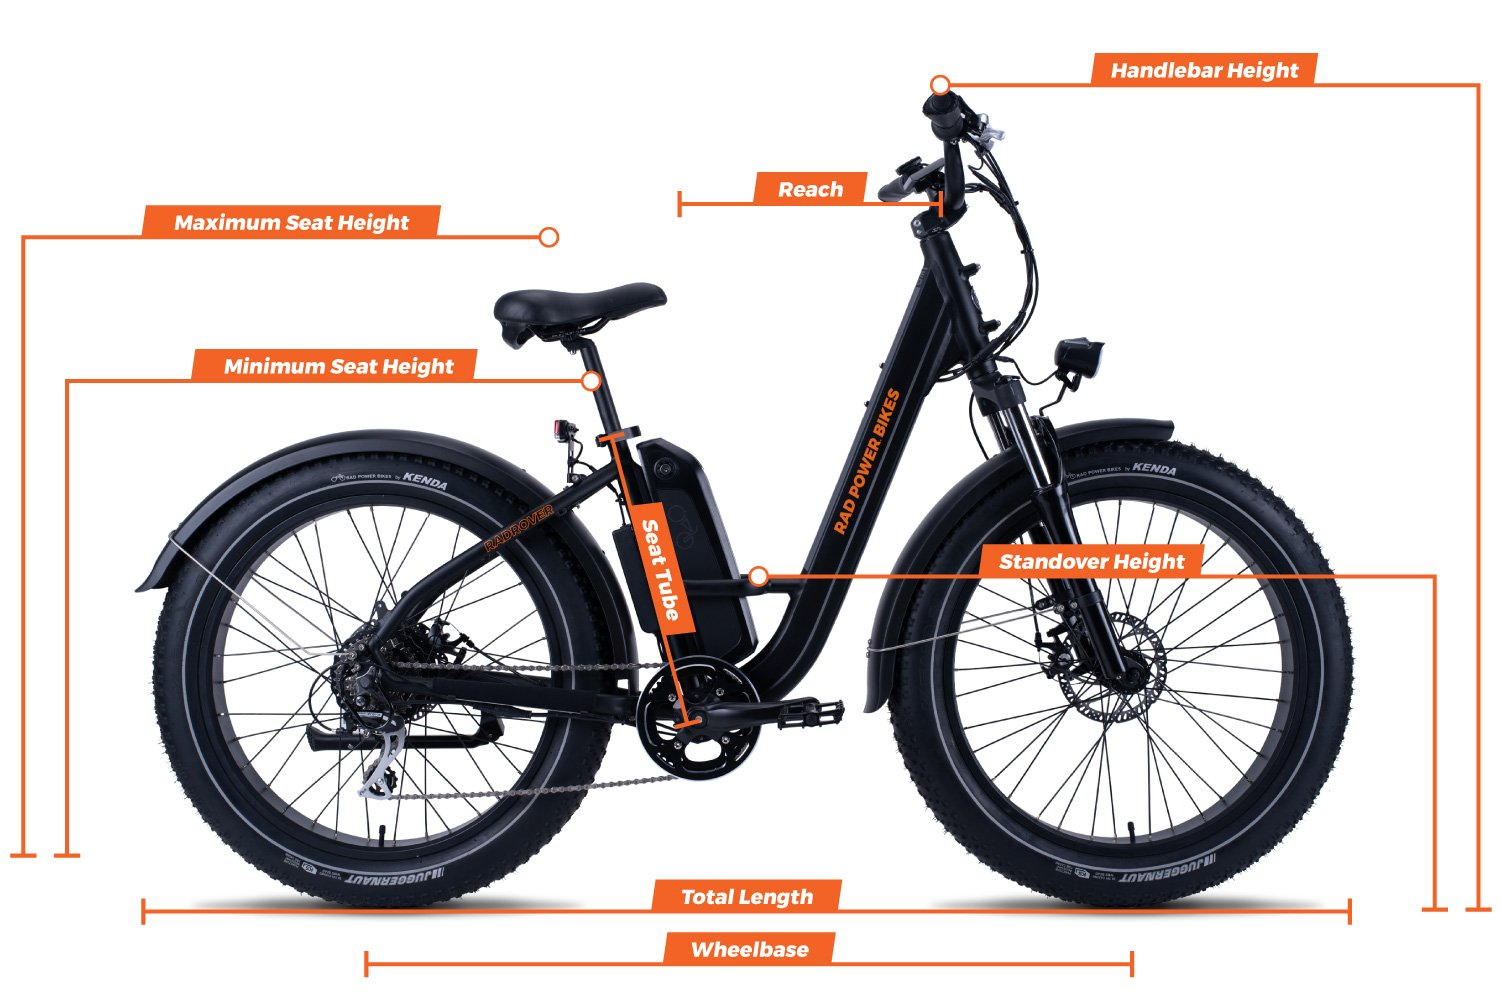 RadRover Step-Thru Electric Fat Bike Version 1 geometry